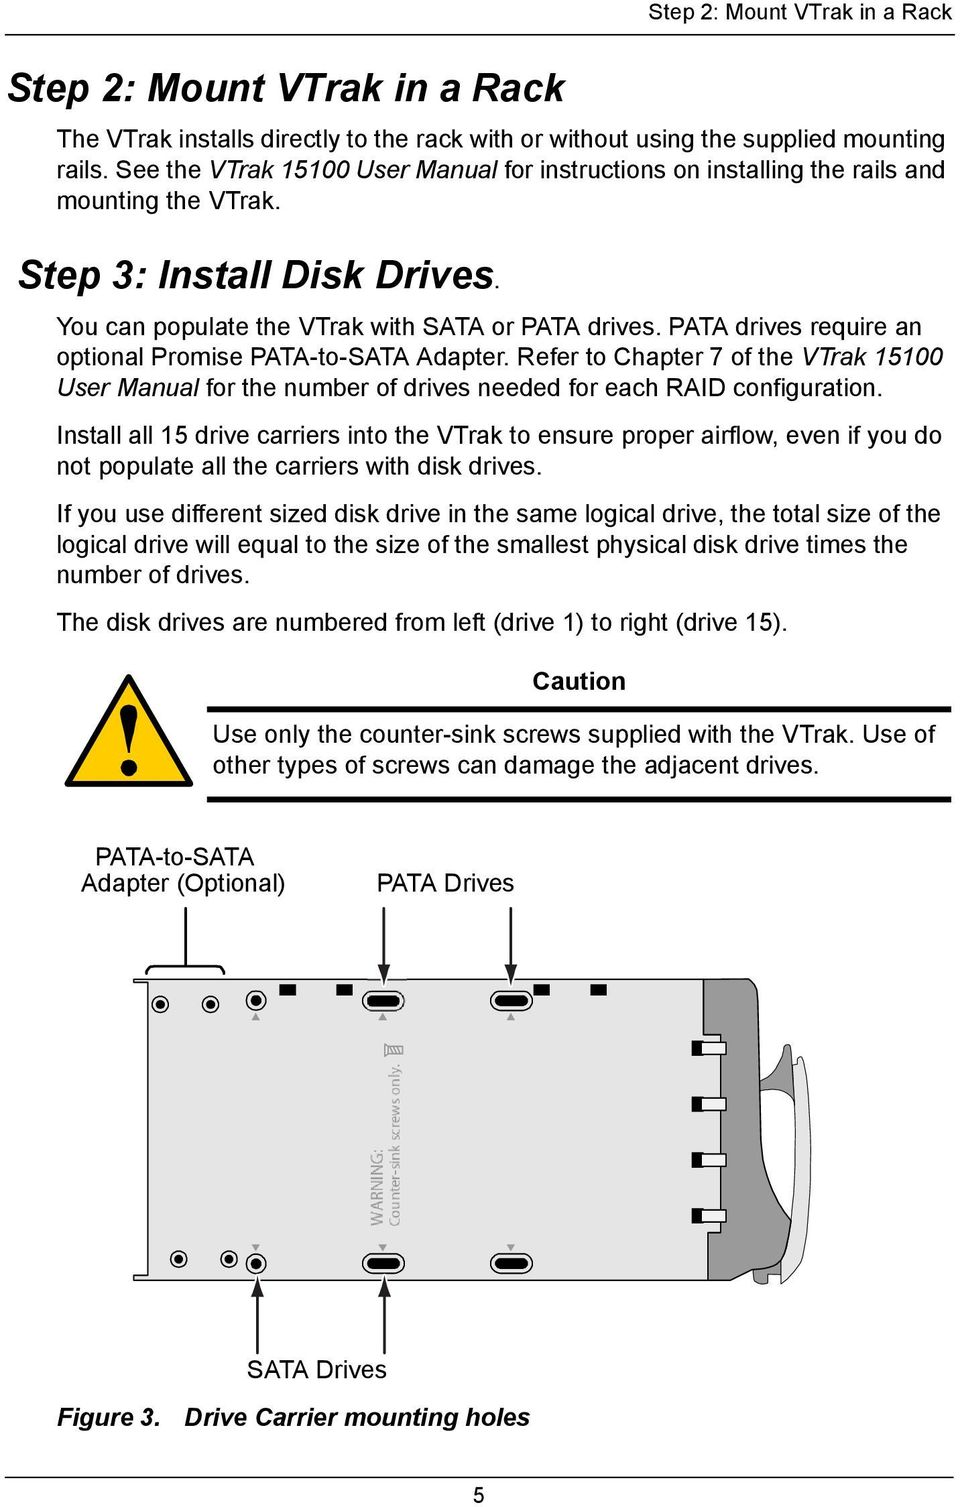 PATA drives require an optional Promise PATA-to-SATA Adapter. Refer to Chapter 7 of the VTrak 15100 User Manual for the number of drives needed for each RAID configuration.